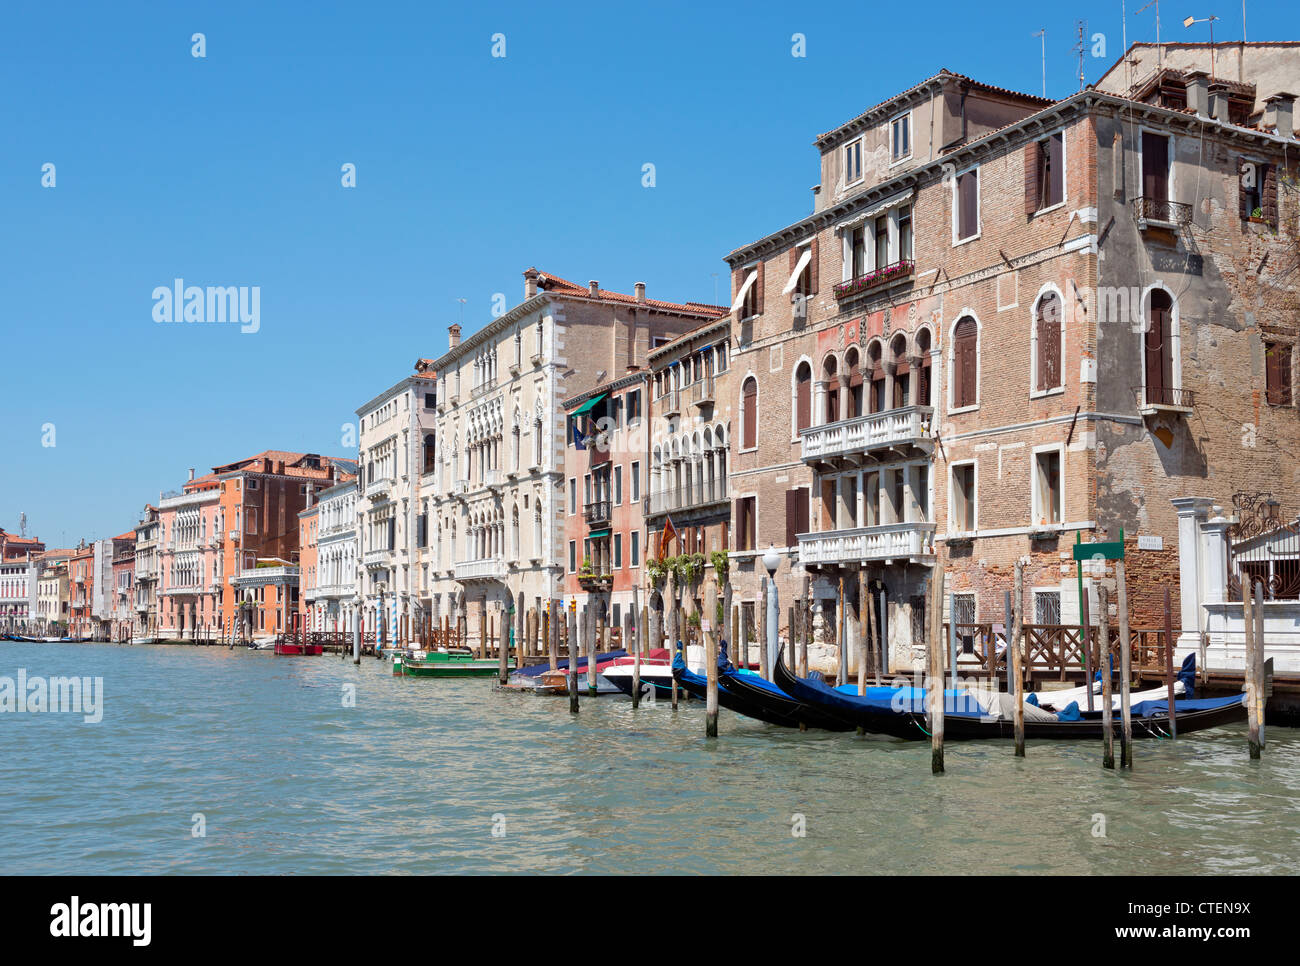 Cityscape taken on the Grand Canal Venice Italy Stock Photo